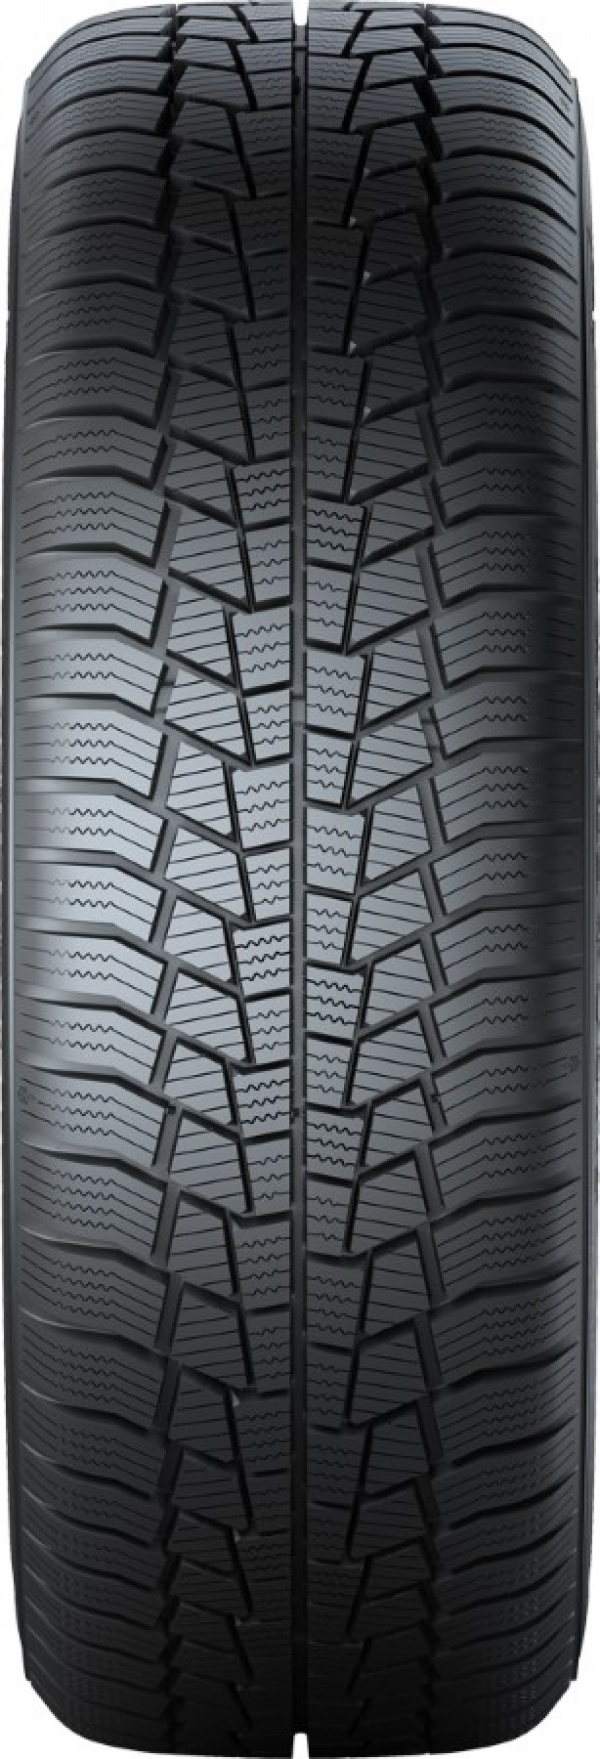 Gislaved Euro Frost 6 255/55 R18 109V  не шип